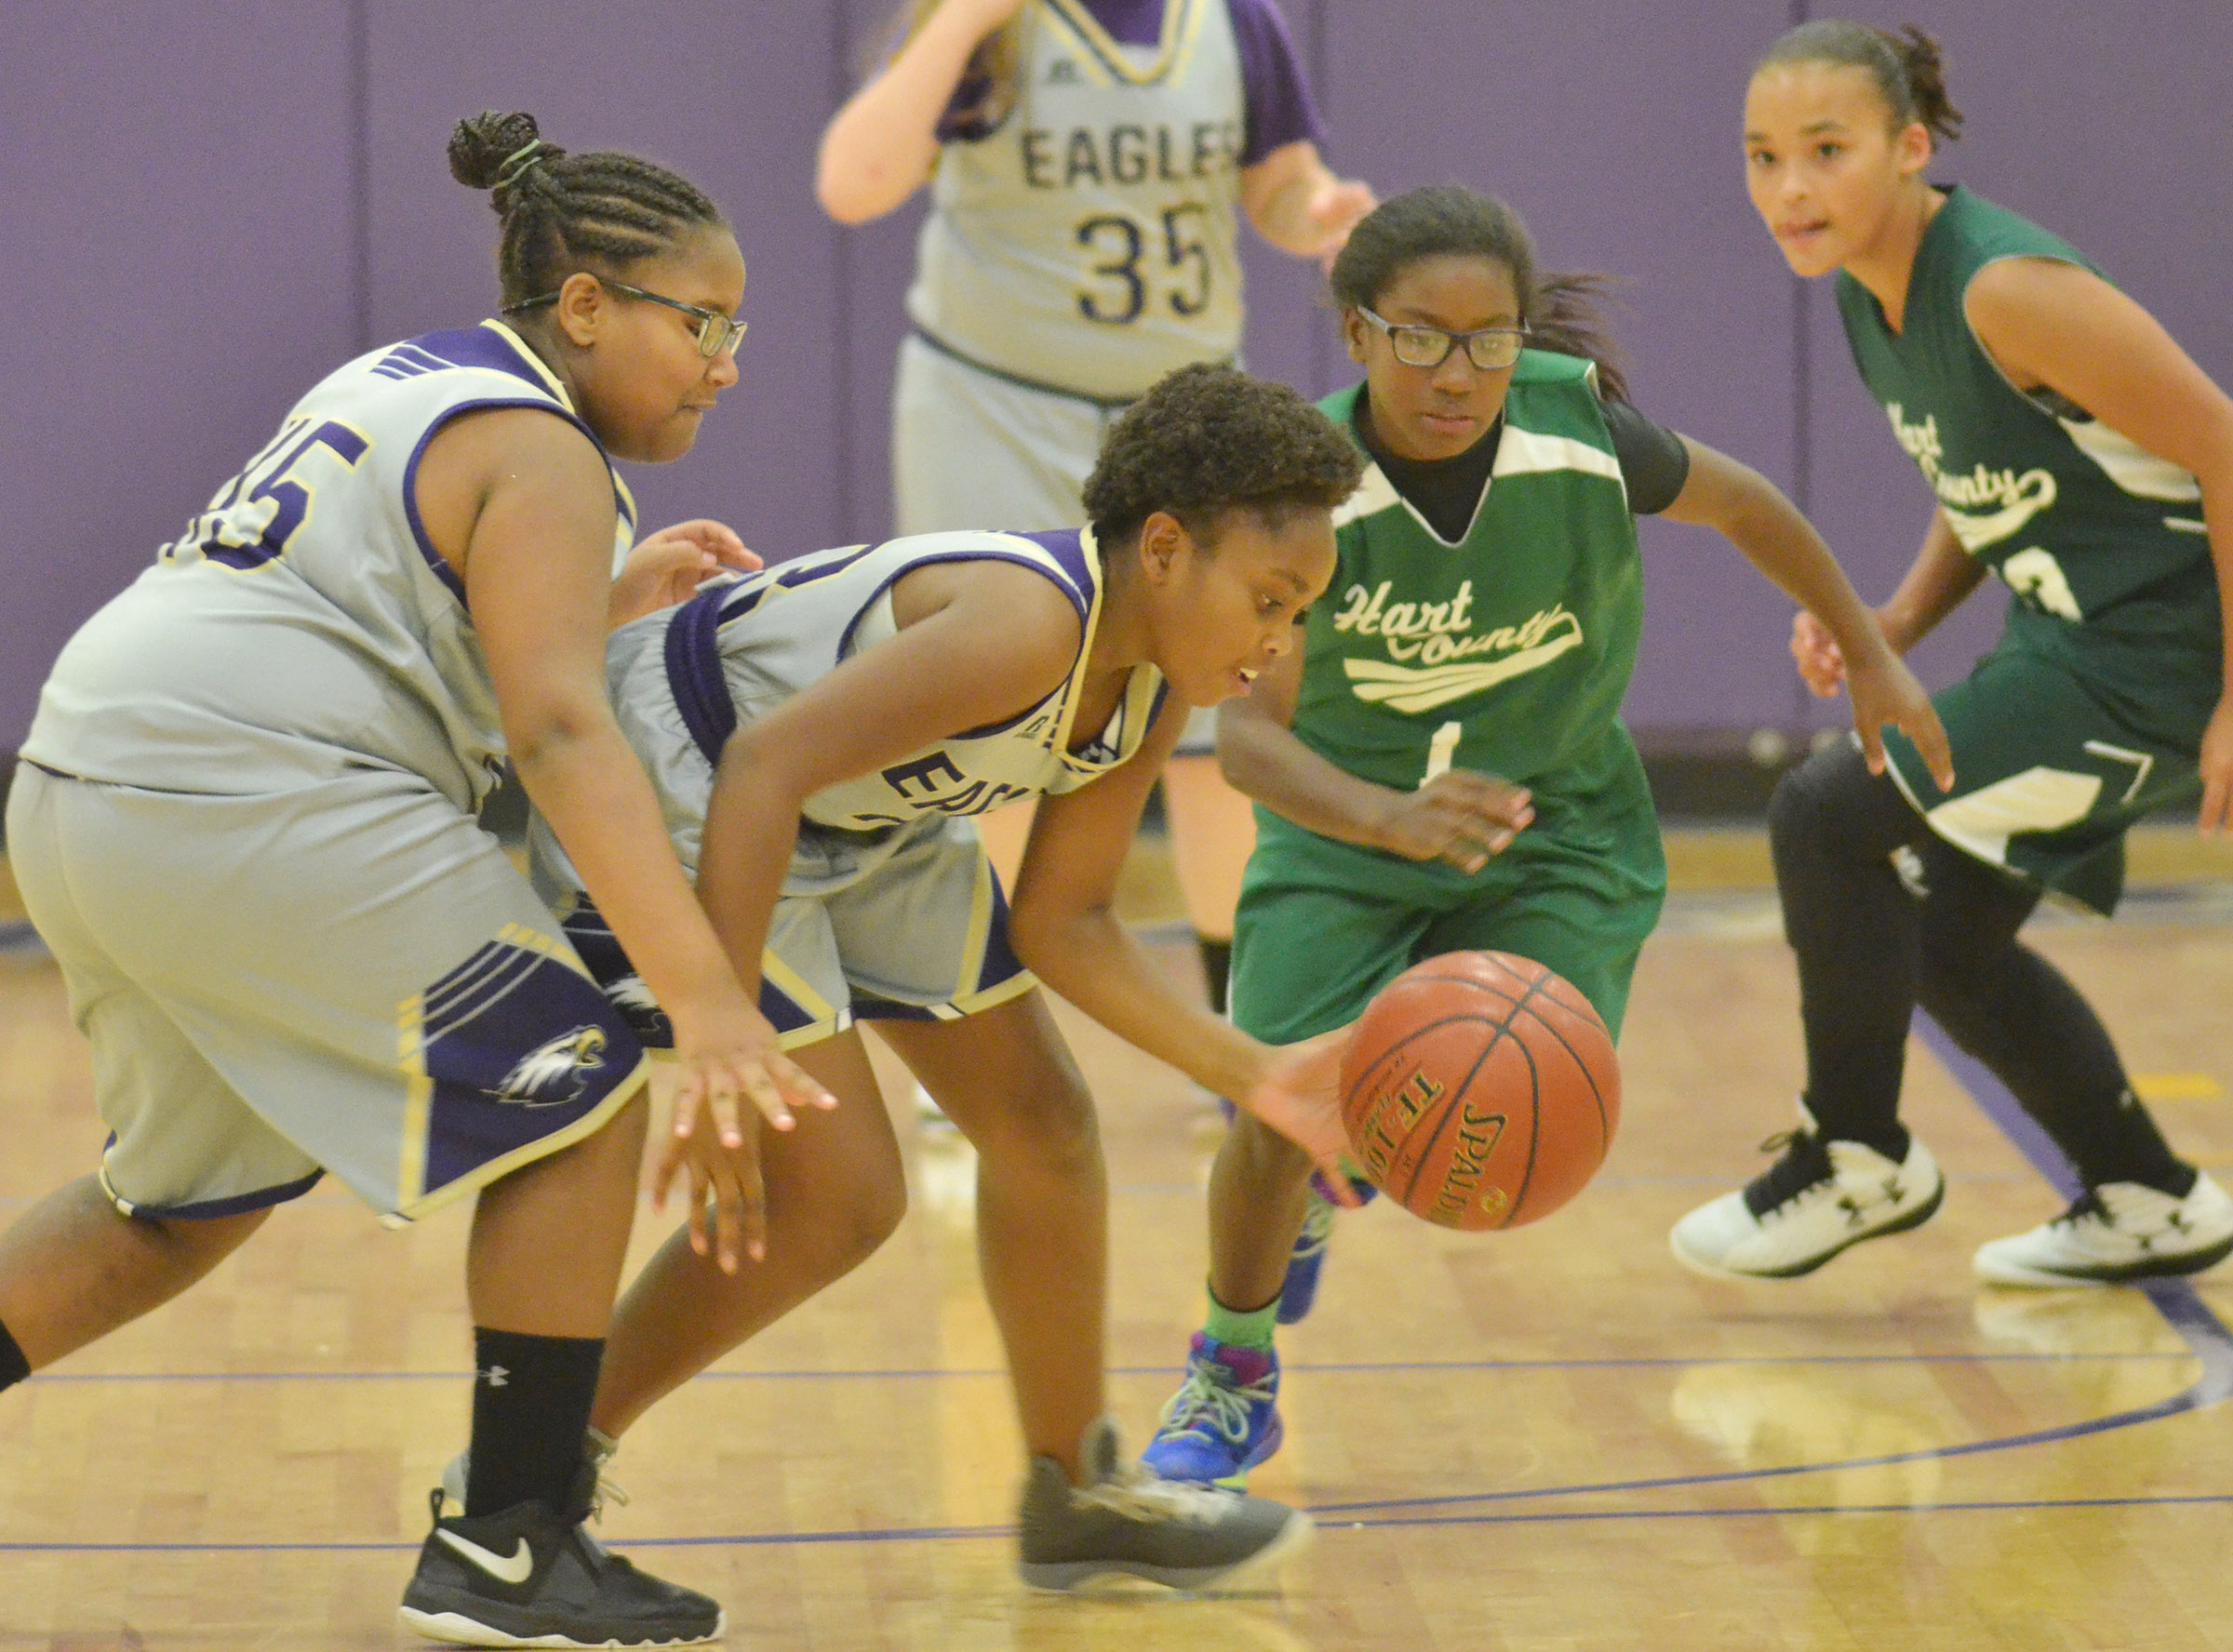 CMS sixth-grader KyAshia Mitchell, at left, and Campbellsville Elementary School fifth-grader Ta'Zaria Owens battle for the ball.